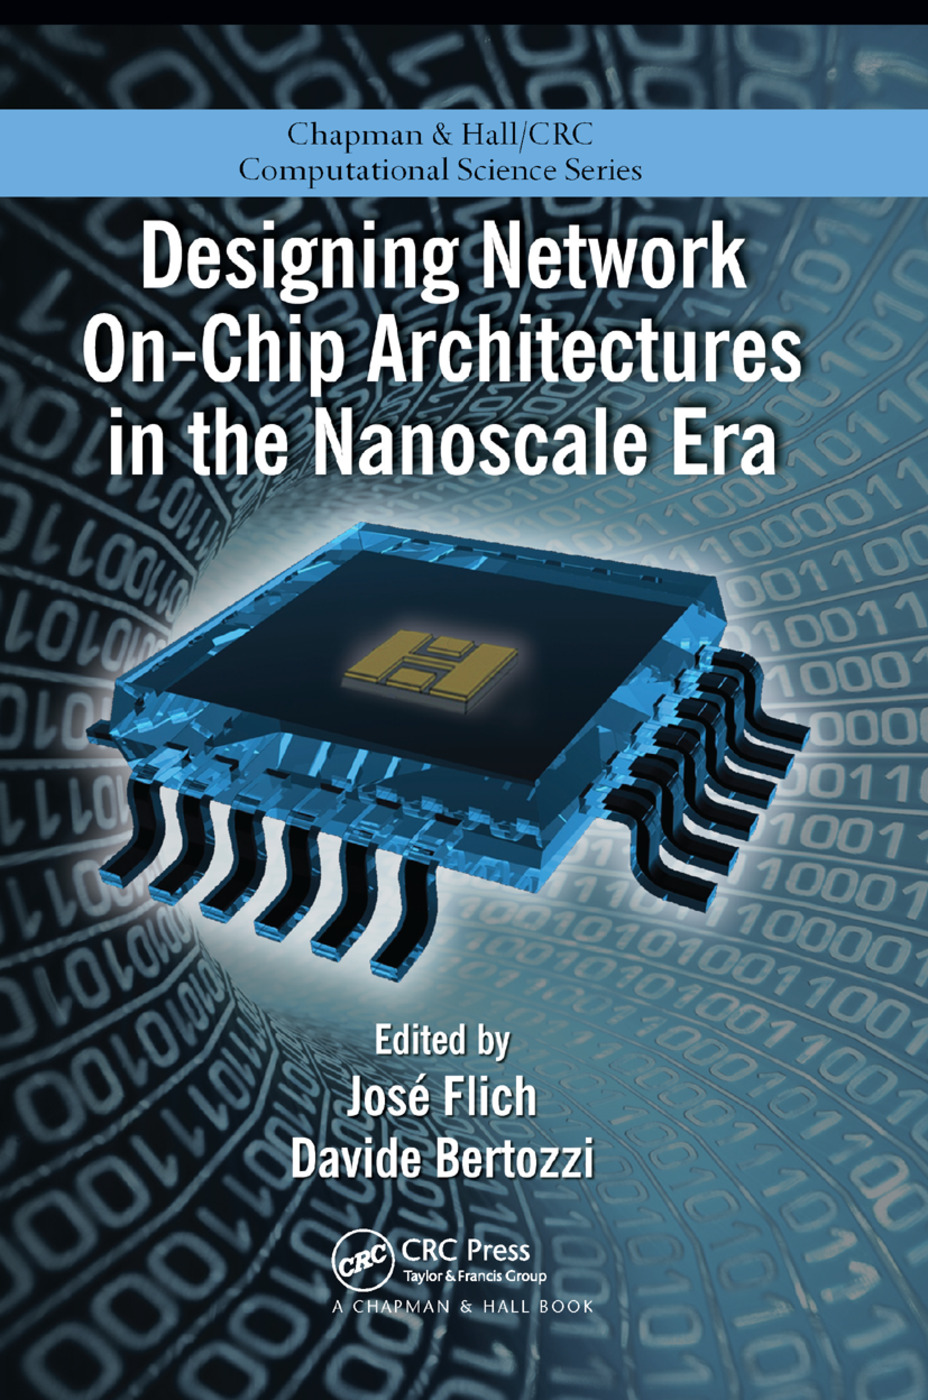 Designing Network On-Chip Architectures in the Nanoscale Era: 1st Edition (Paperback) book cover